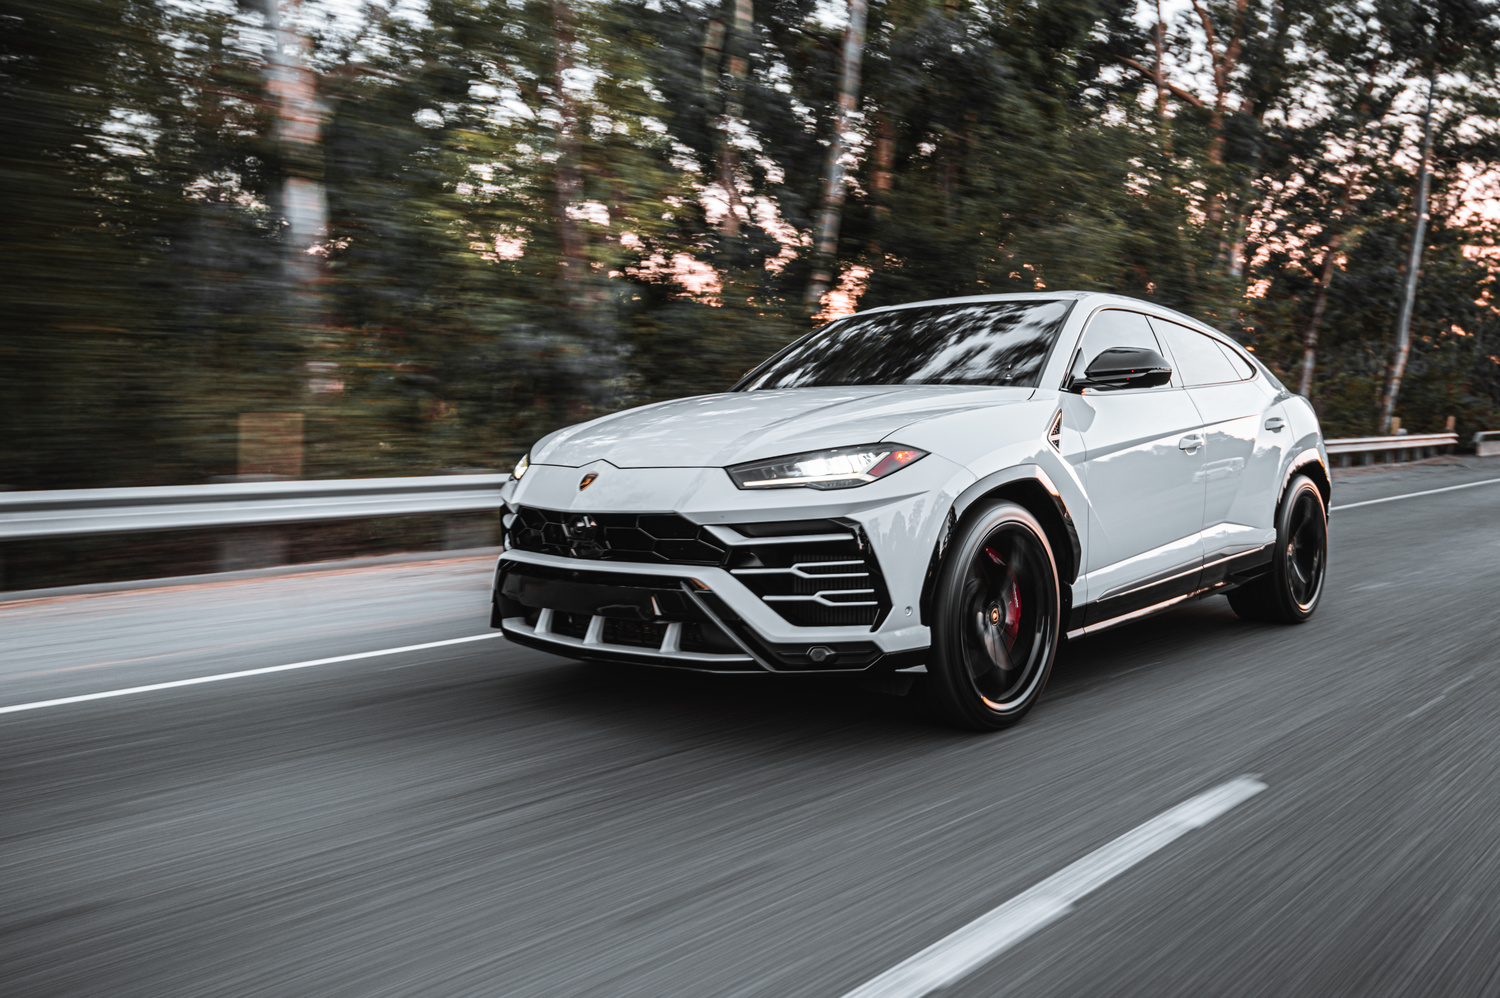 Urus Roller by Peter Parker